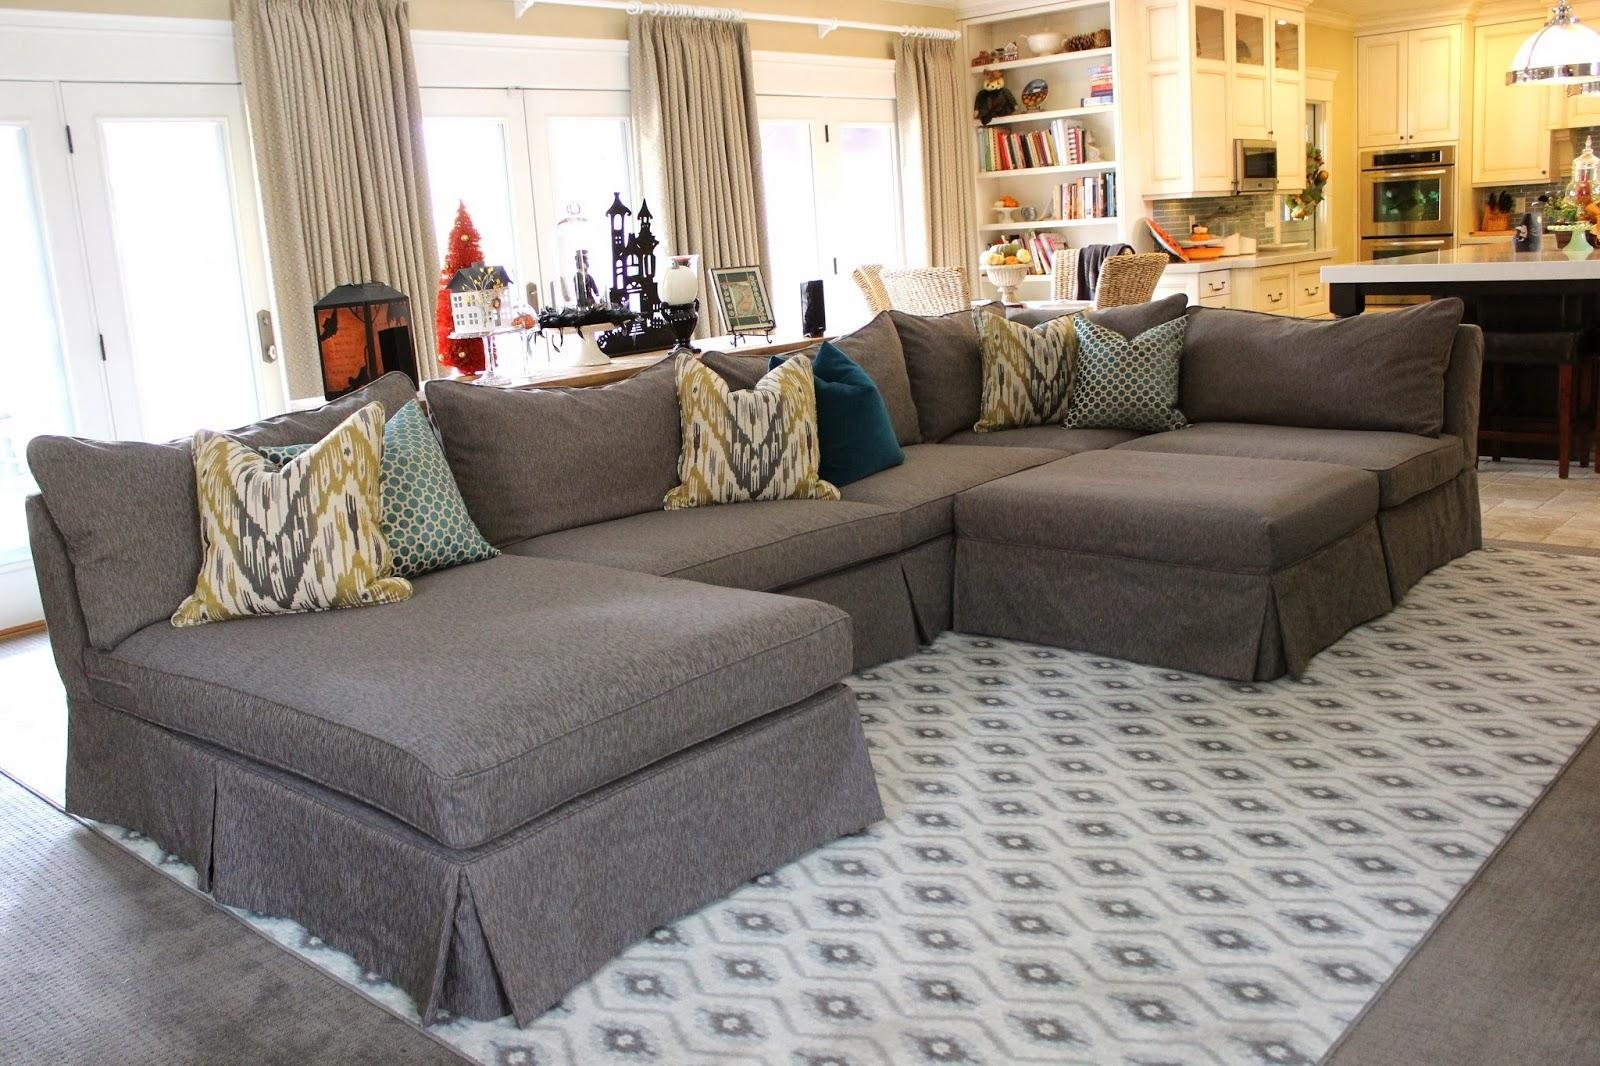 Furniture: How To Make Slipcover For Sectional Sofa | Slipcovered In Slipcover For Leather Sectional Sofas (Image 5 of 21)